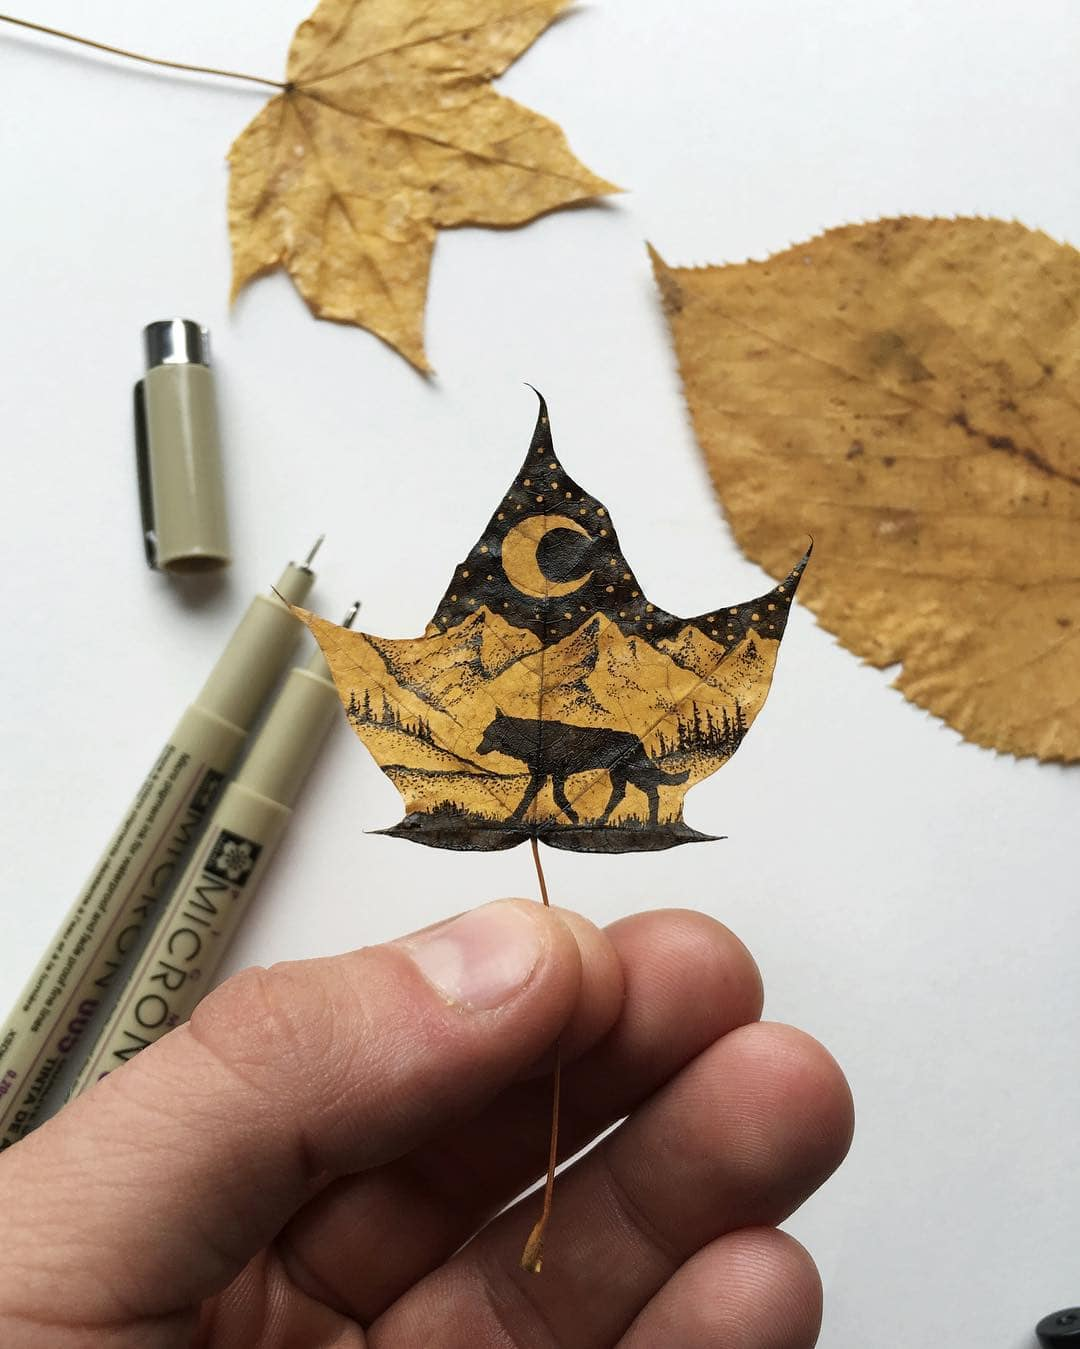 Inkon Leaf Hand-Drawn Nature-Themed Illustrations by Sam Larson